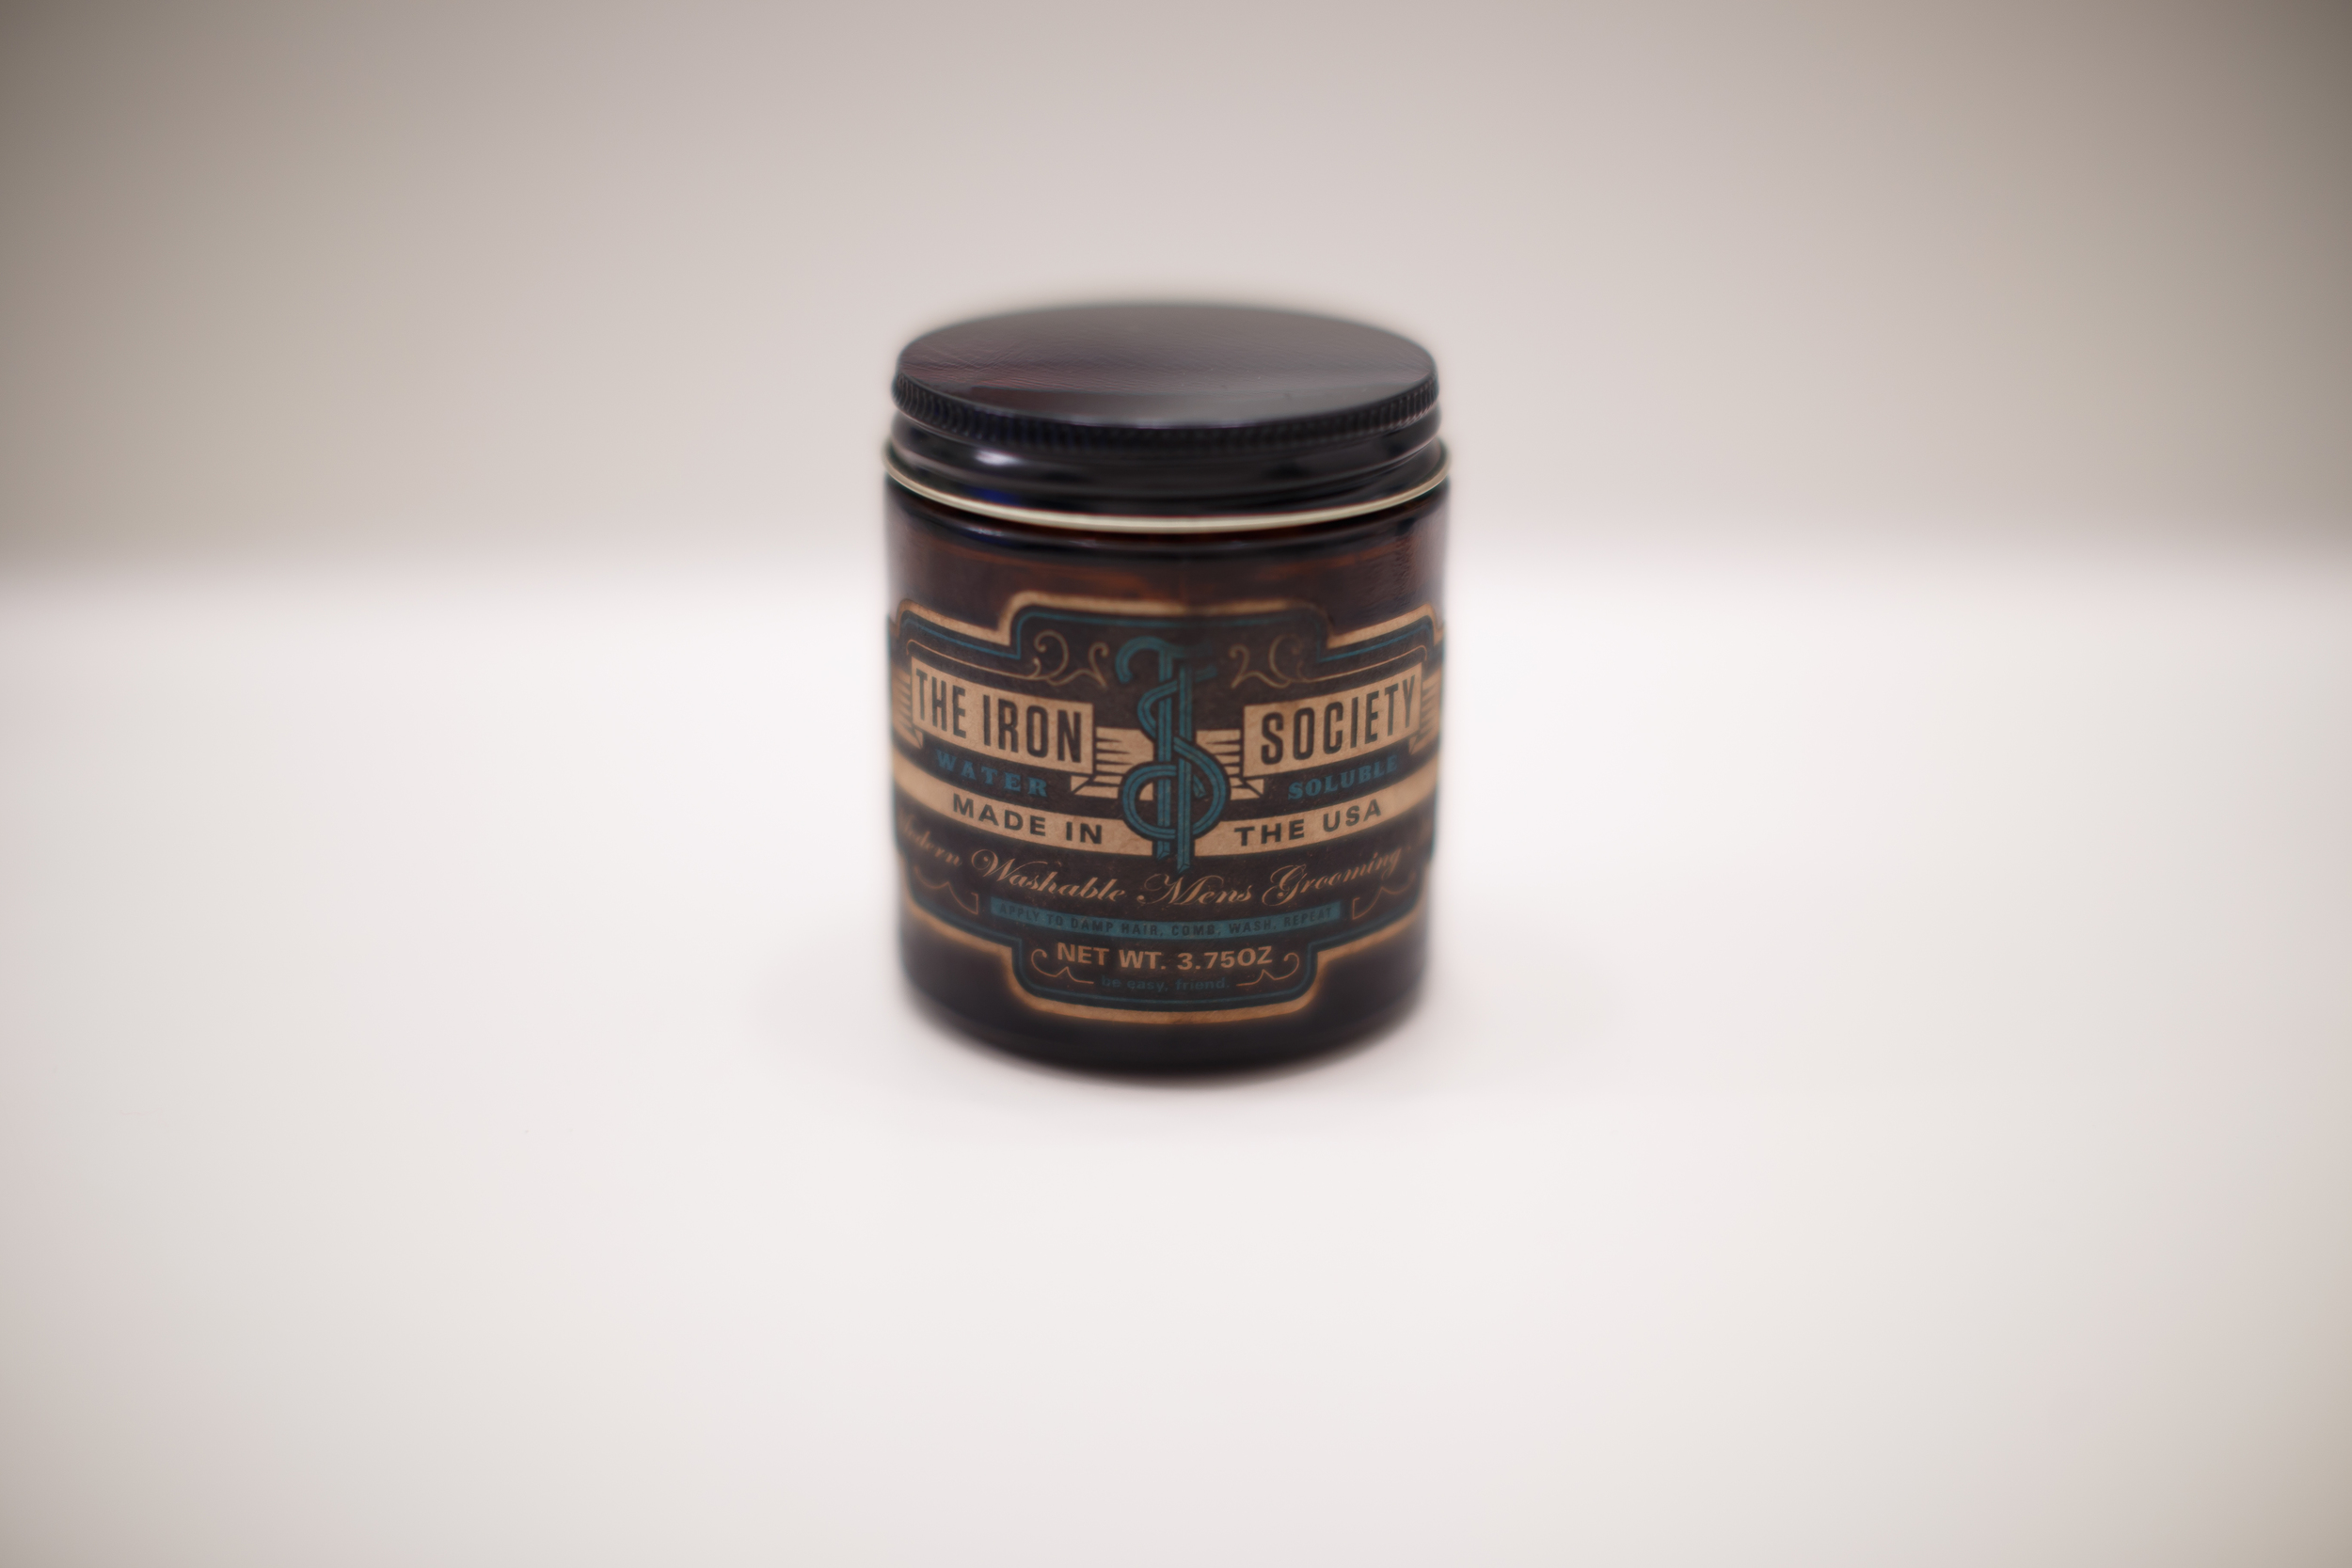 ThePomp Pomp Pomade Pompadour The Iron Society Water Soluble New York Jar